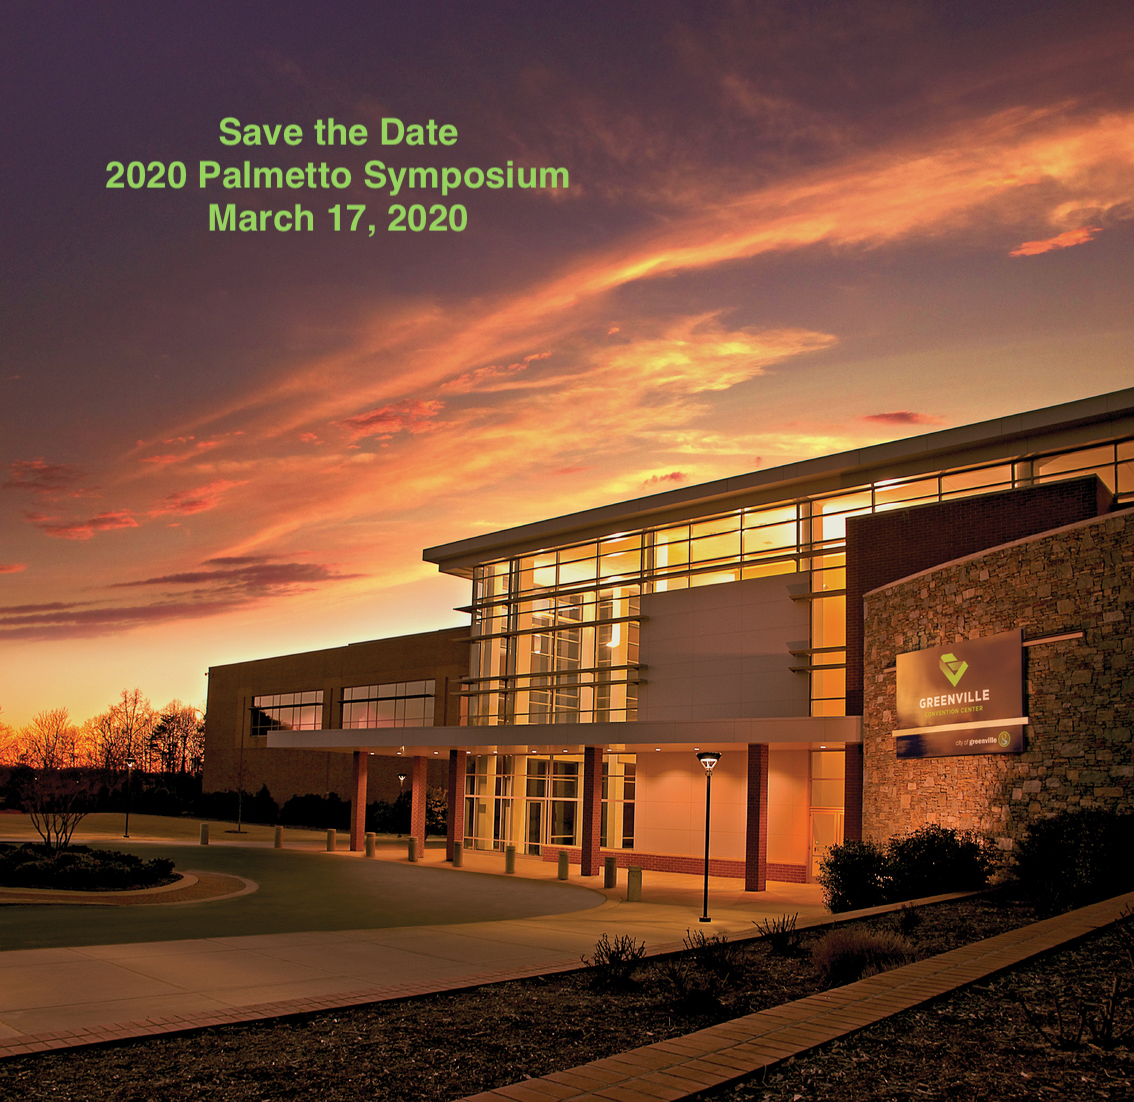 Save the Date 2020 Symposium